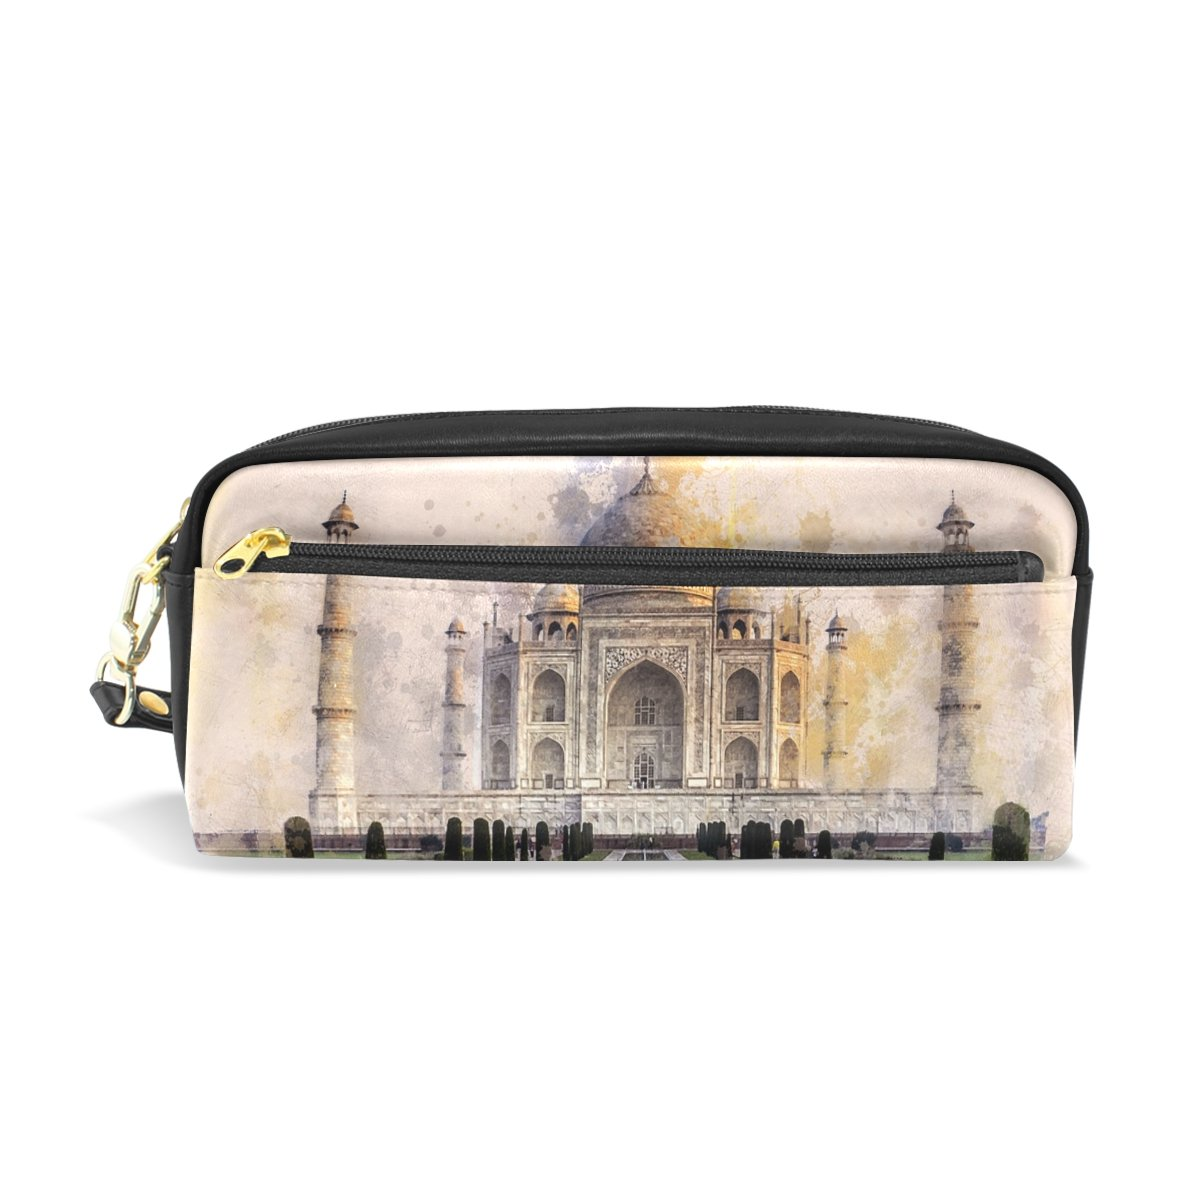 DNOVING Pencil Case Stylish Print Taj Mahal Ivory-White Marble Agra India 17th Art Pattern Large Capacity Pen Bag Makeup Pouch Durable Students Stationery Two Pockets with Double Zipper